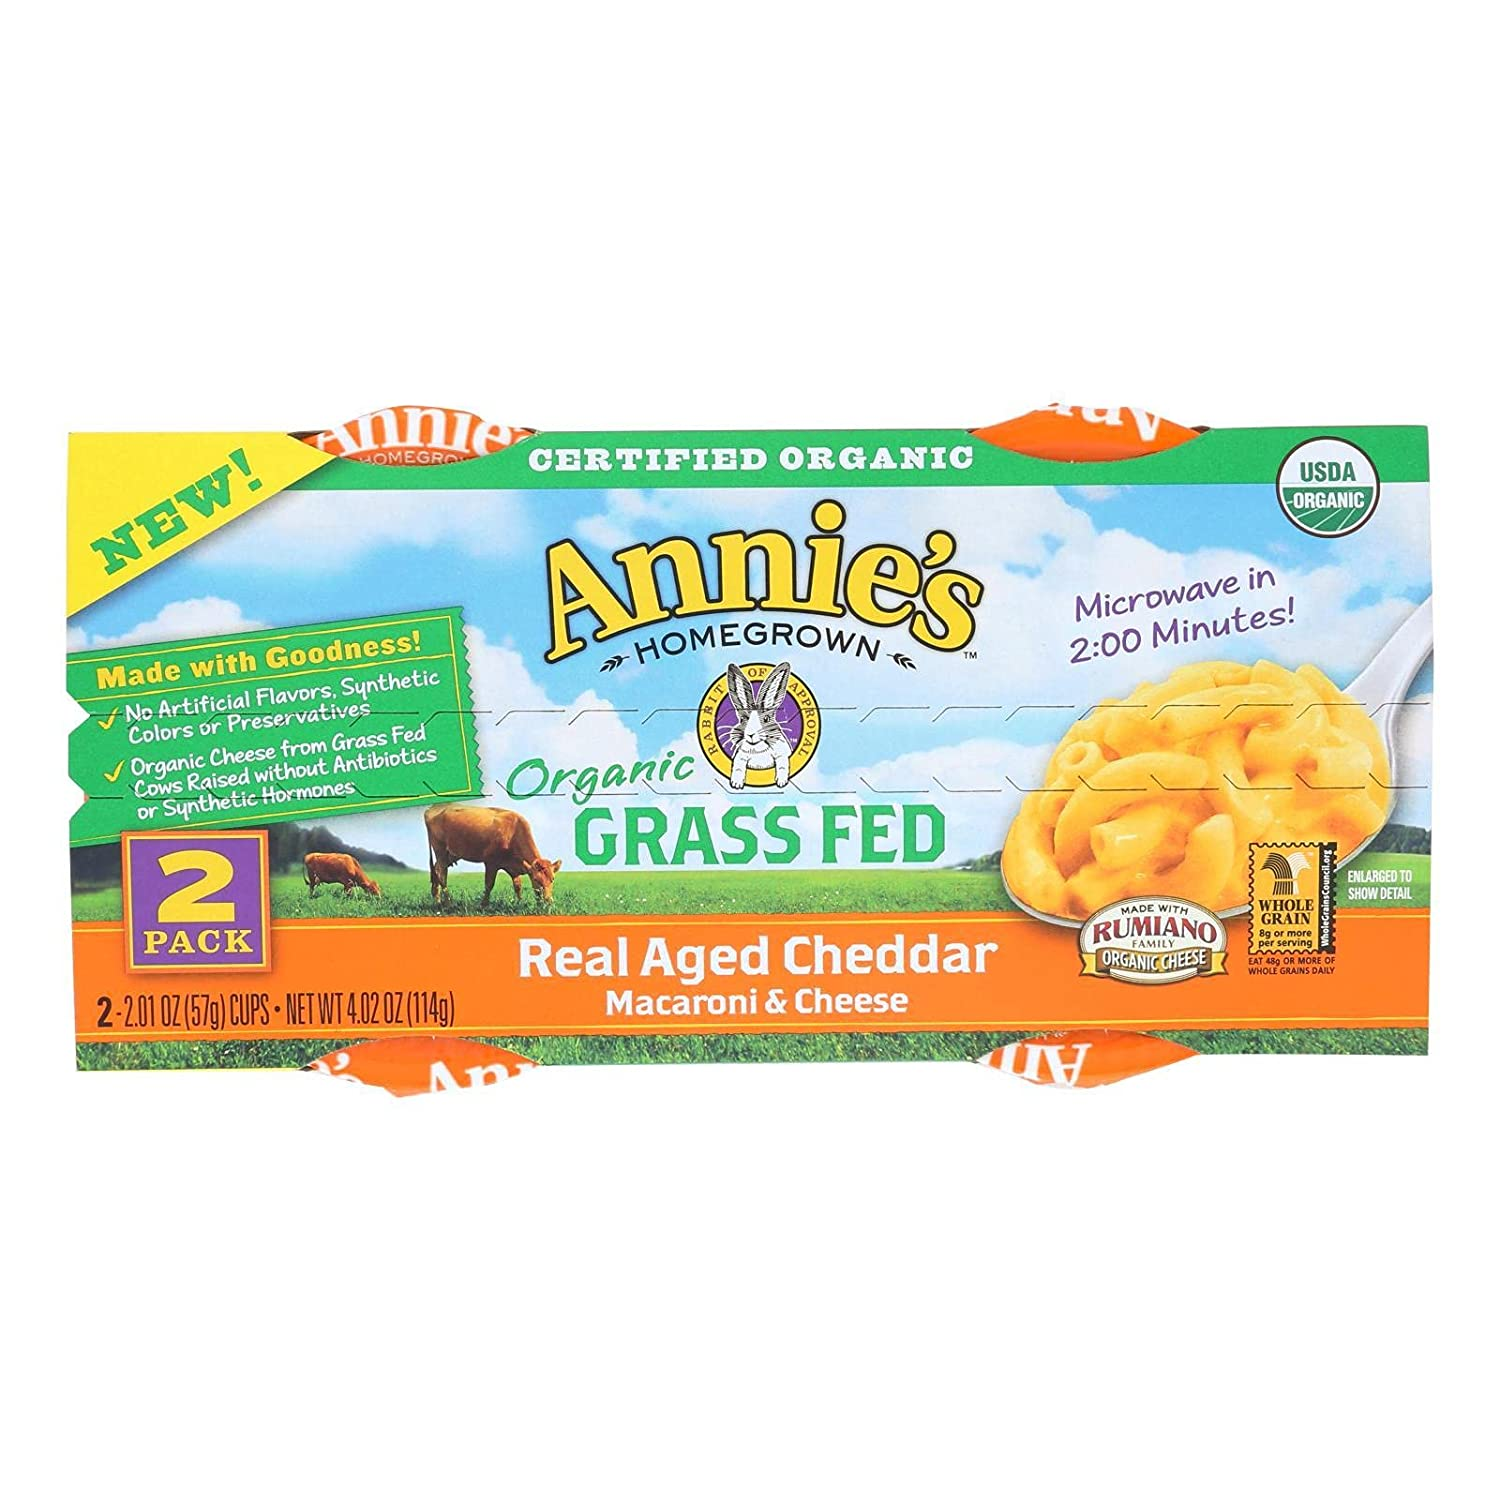 Annies Homegrown Organic OFFicial store Microwave Macaroni Cheese Al sold out. Cup and 4.02